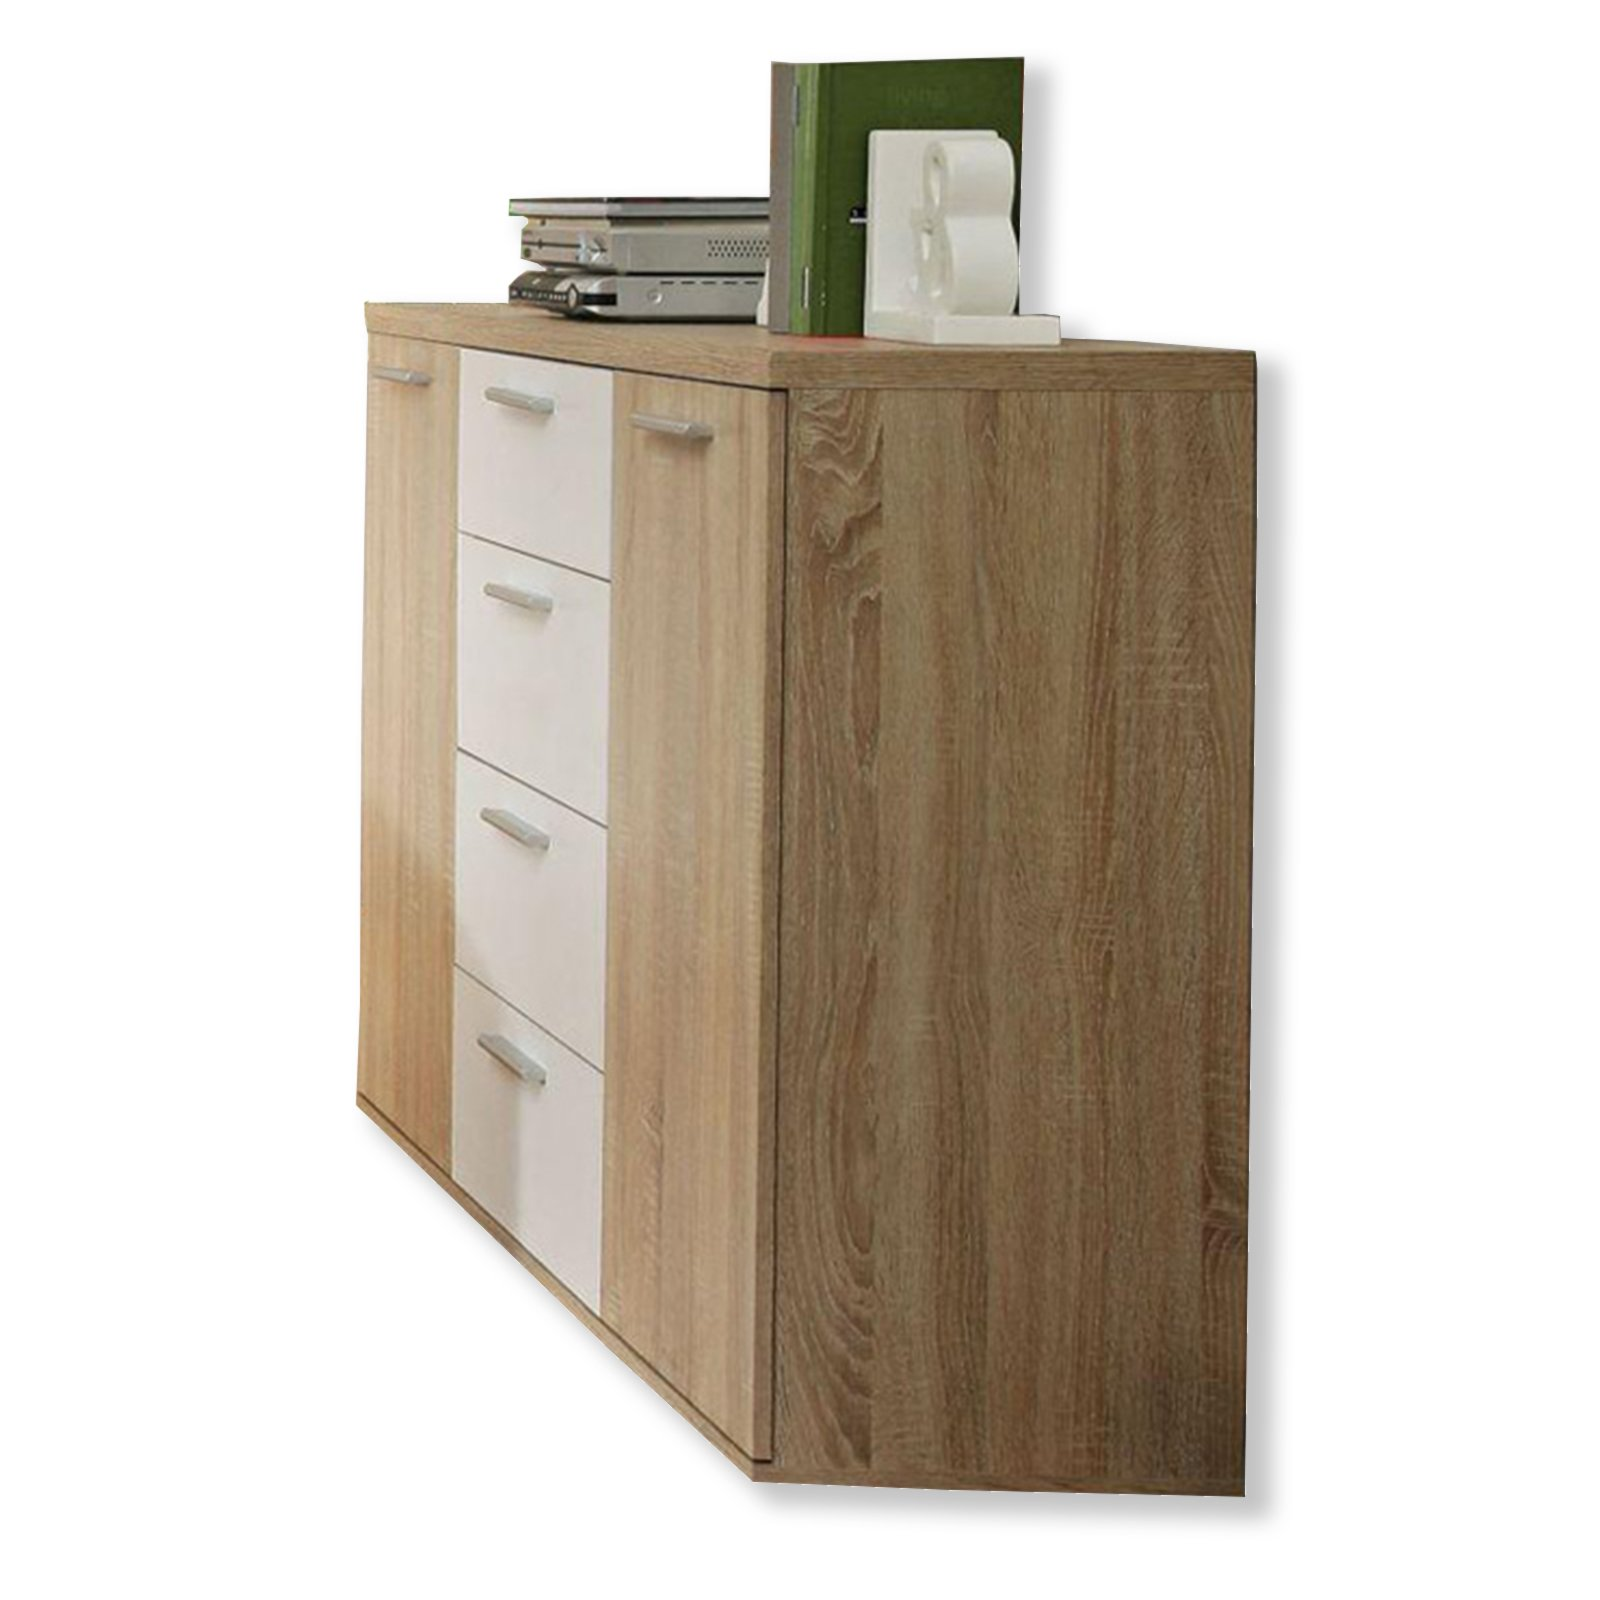 kommode winnie sonoma eiche wei 130 cm kommoden sideboards m bel roller m belhaus. Black Bedroom Furniture Sets. Home Design Ideas